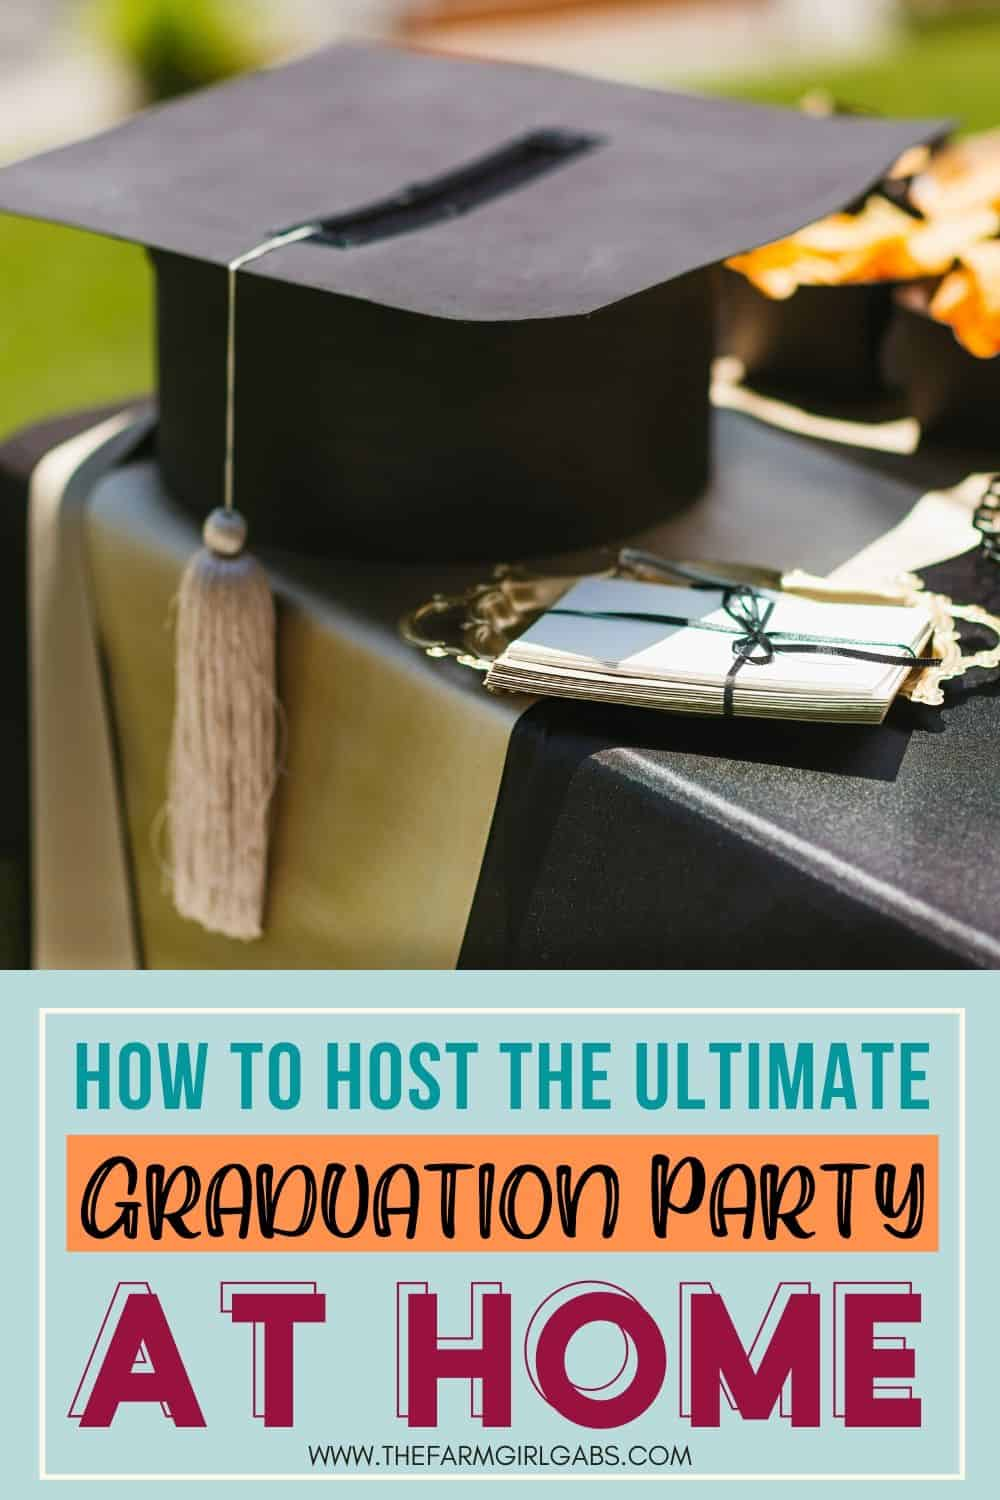 Planning a graduation party? Follow these tips and tricks for How To Throw A Graduation Party At Home without breaking the budget. These budget-friendly party tips will help you plan a memorable graduation party without breaking the bank.